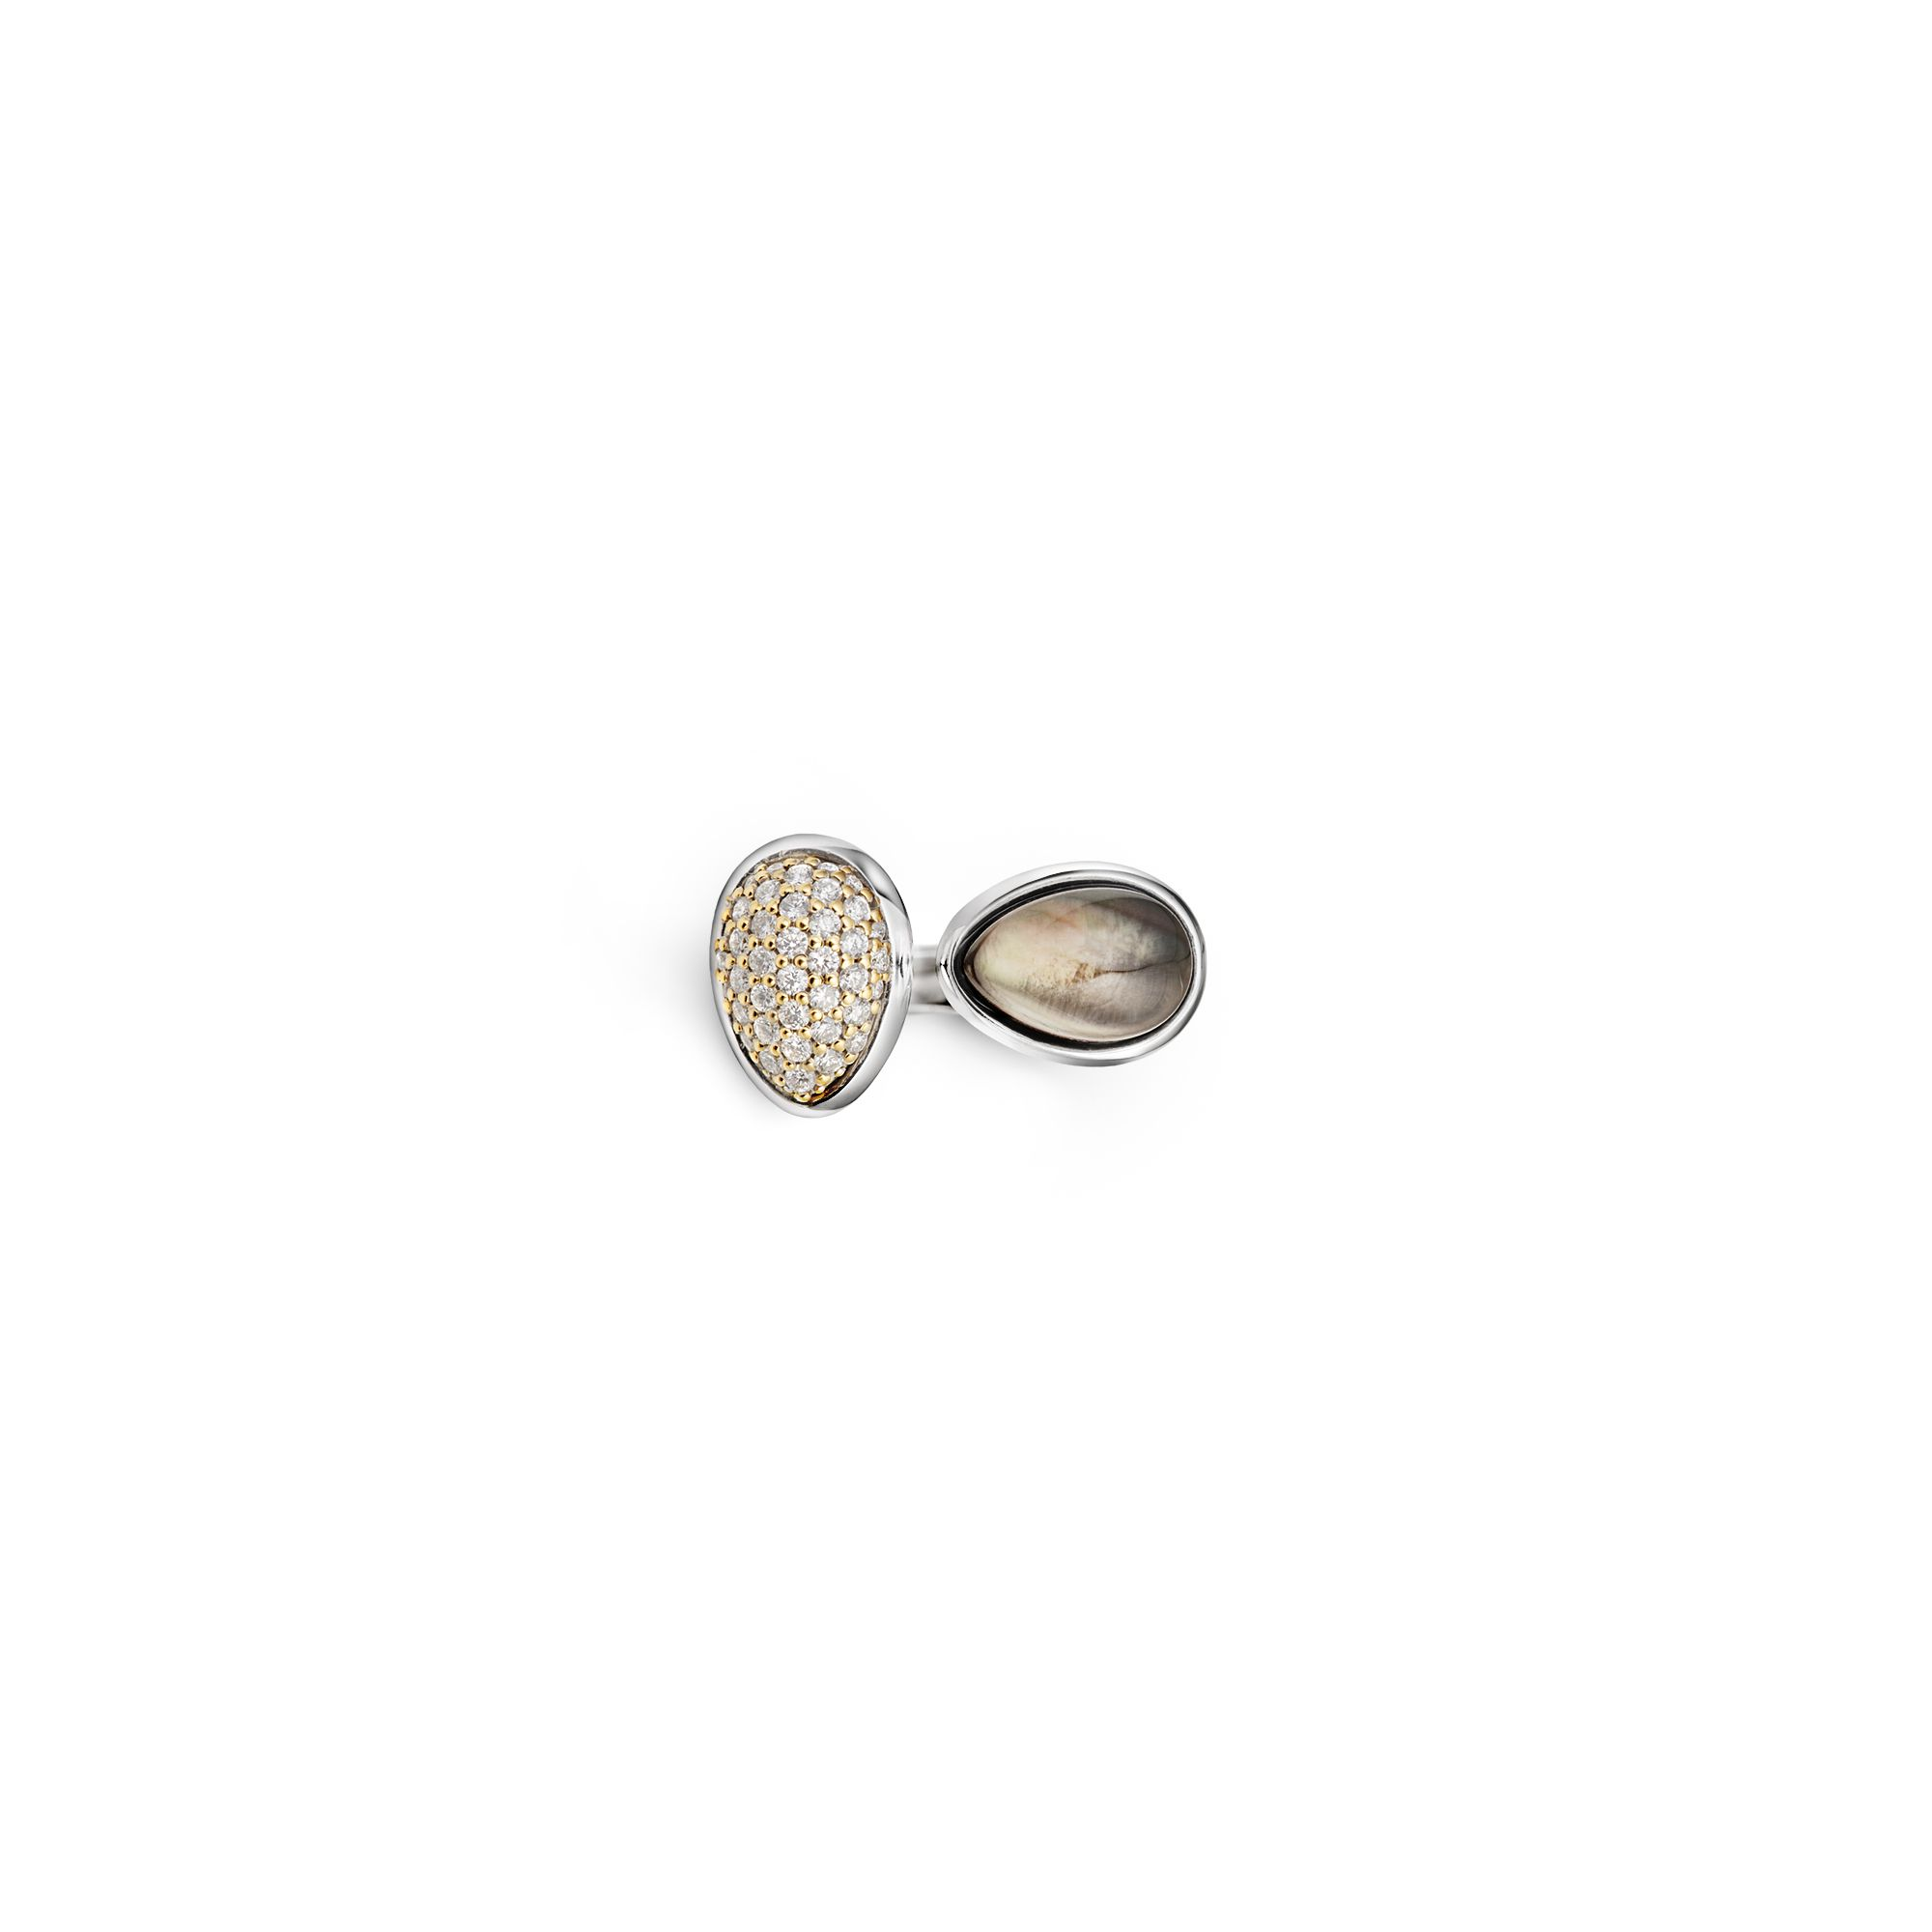 2 element Goccia ring Silver and gold ring with diamonds